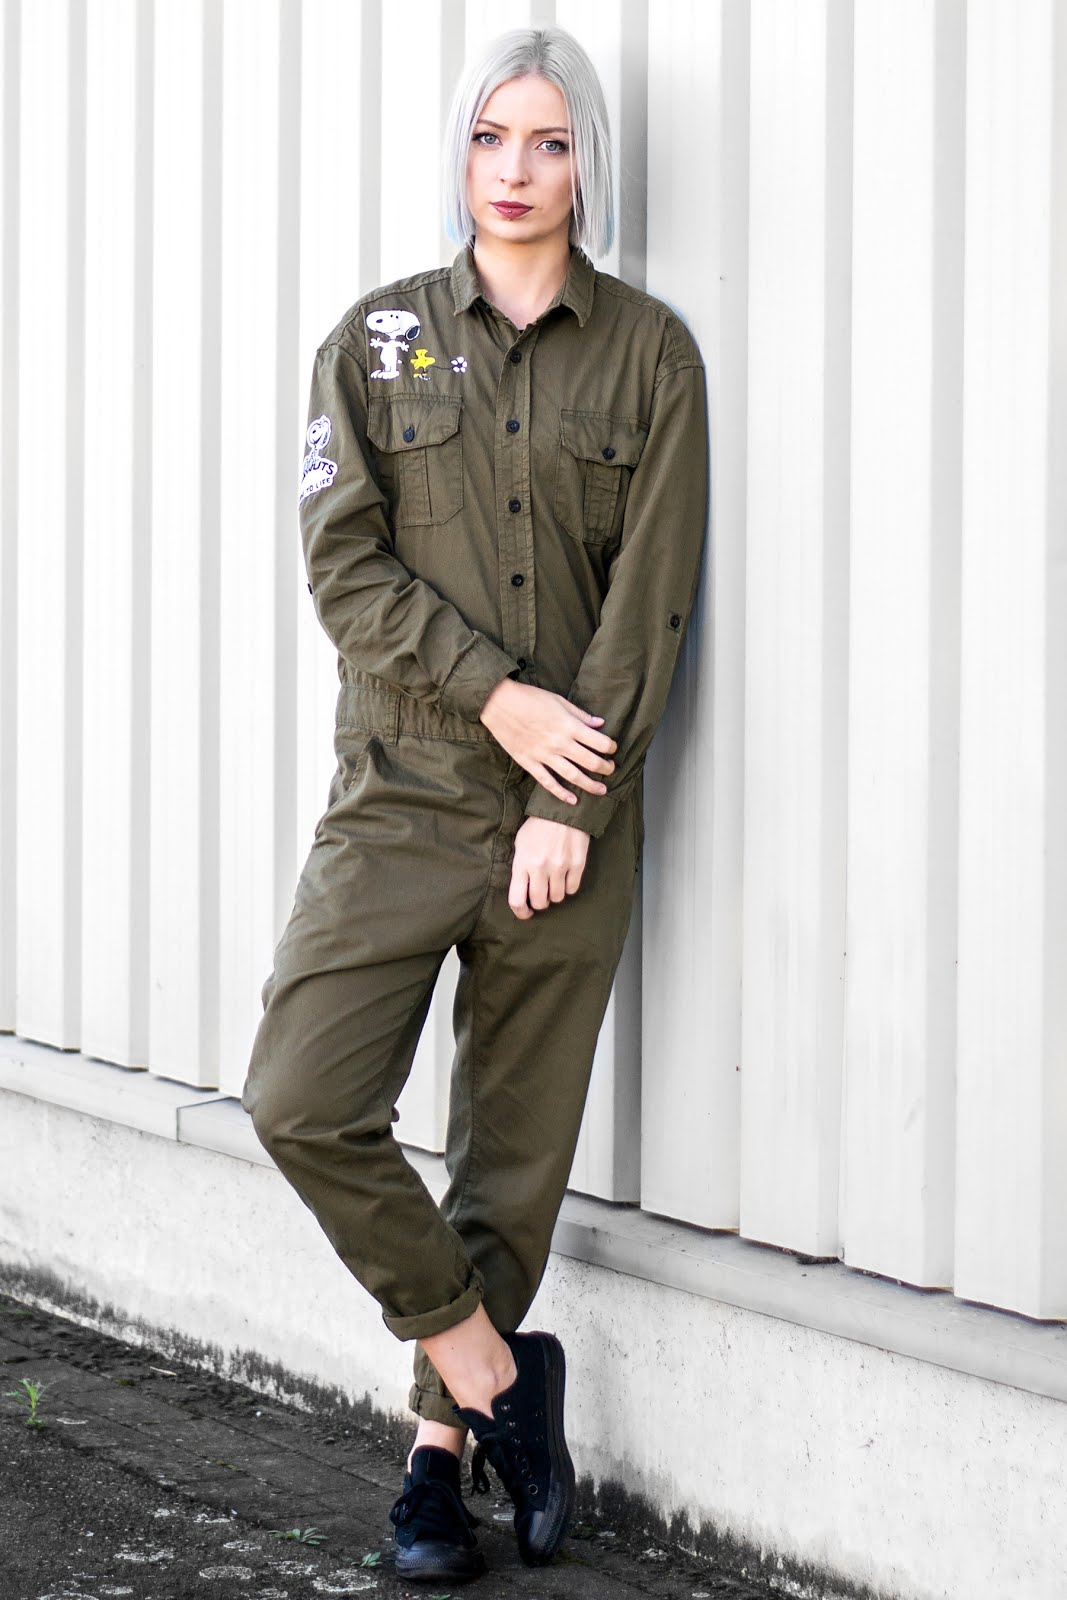 Peanuts boilersuit, jumpsuit, snoopy, zara trf, sale, khaki green, monochrome converse, all star, black, outfit, minimal